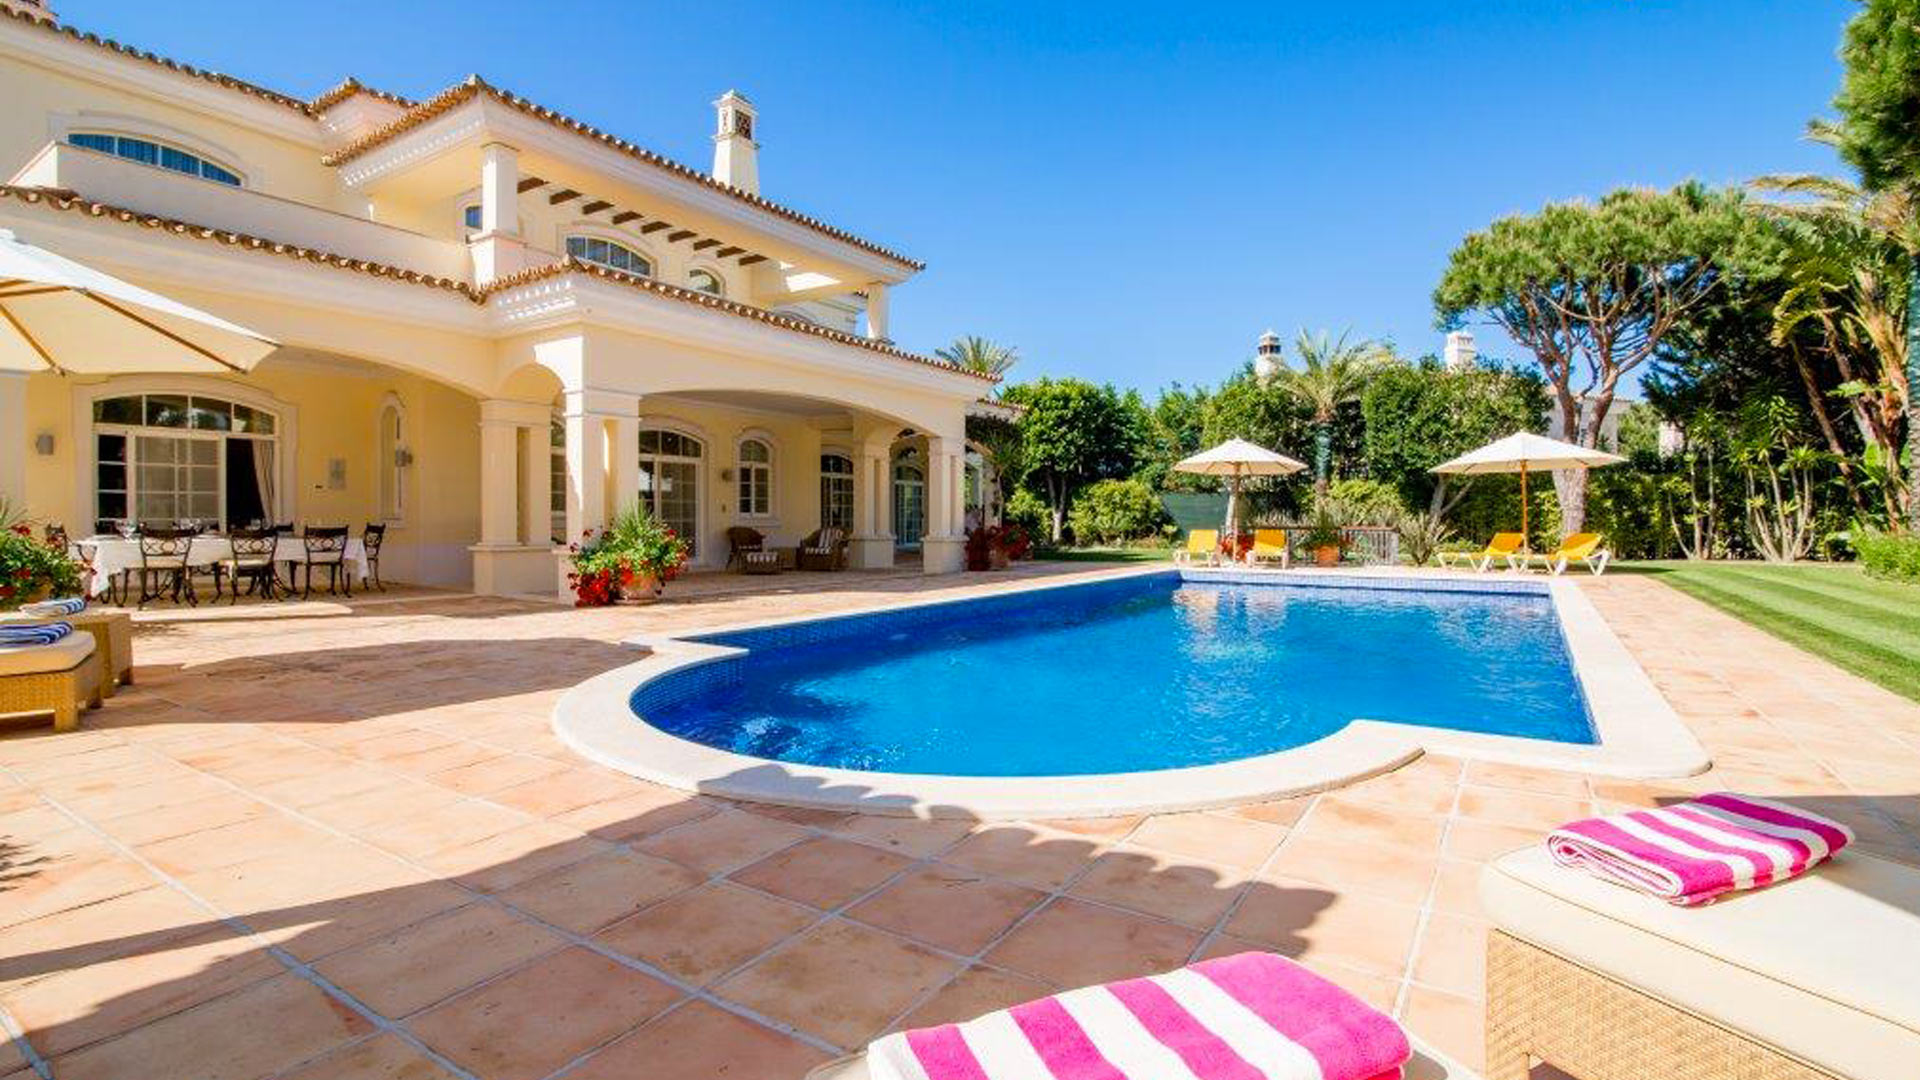 Villa Villa Gloriosa, Rental in Algarve